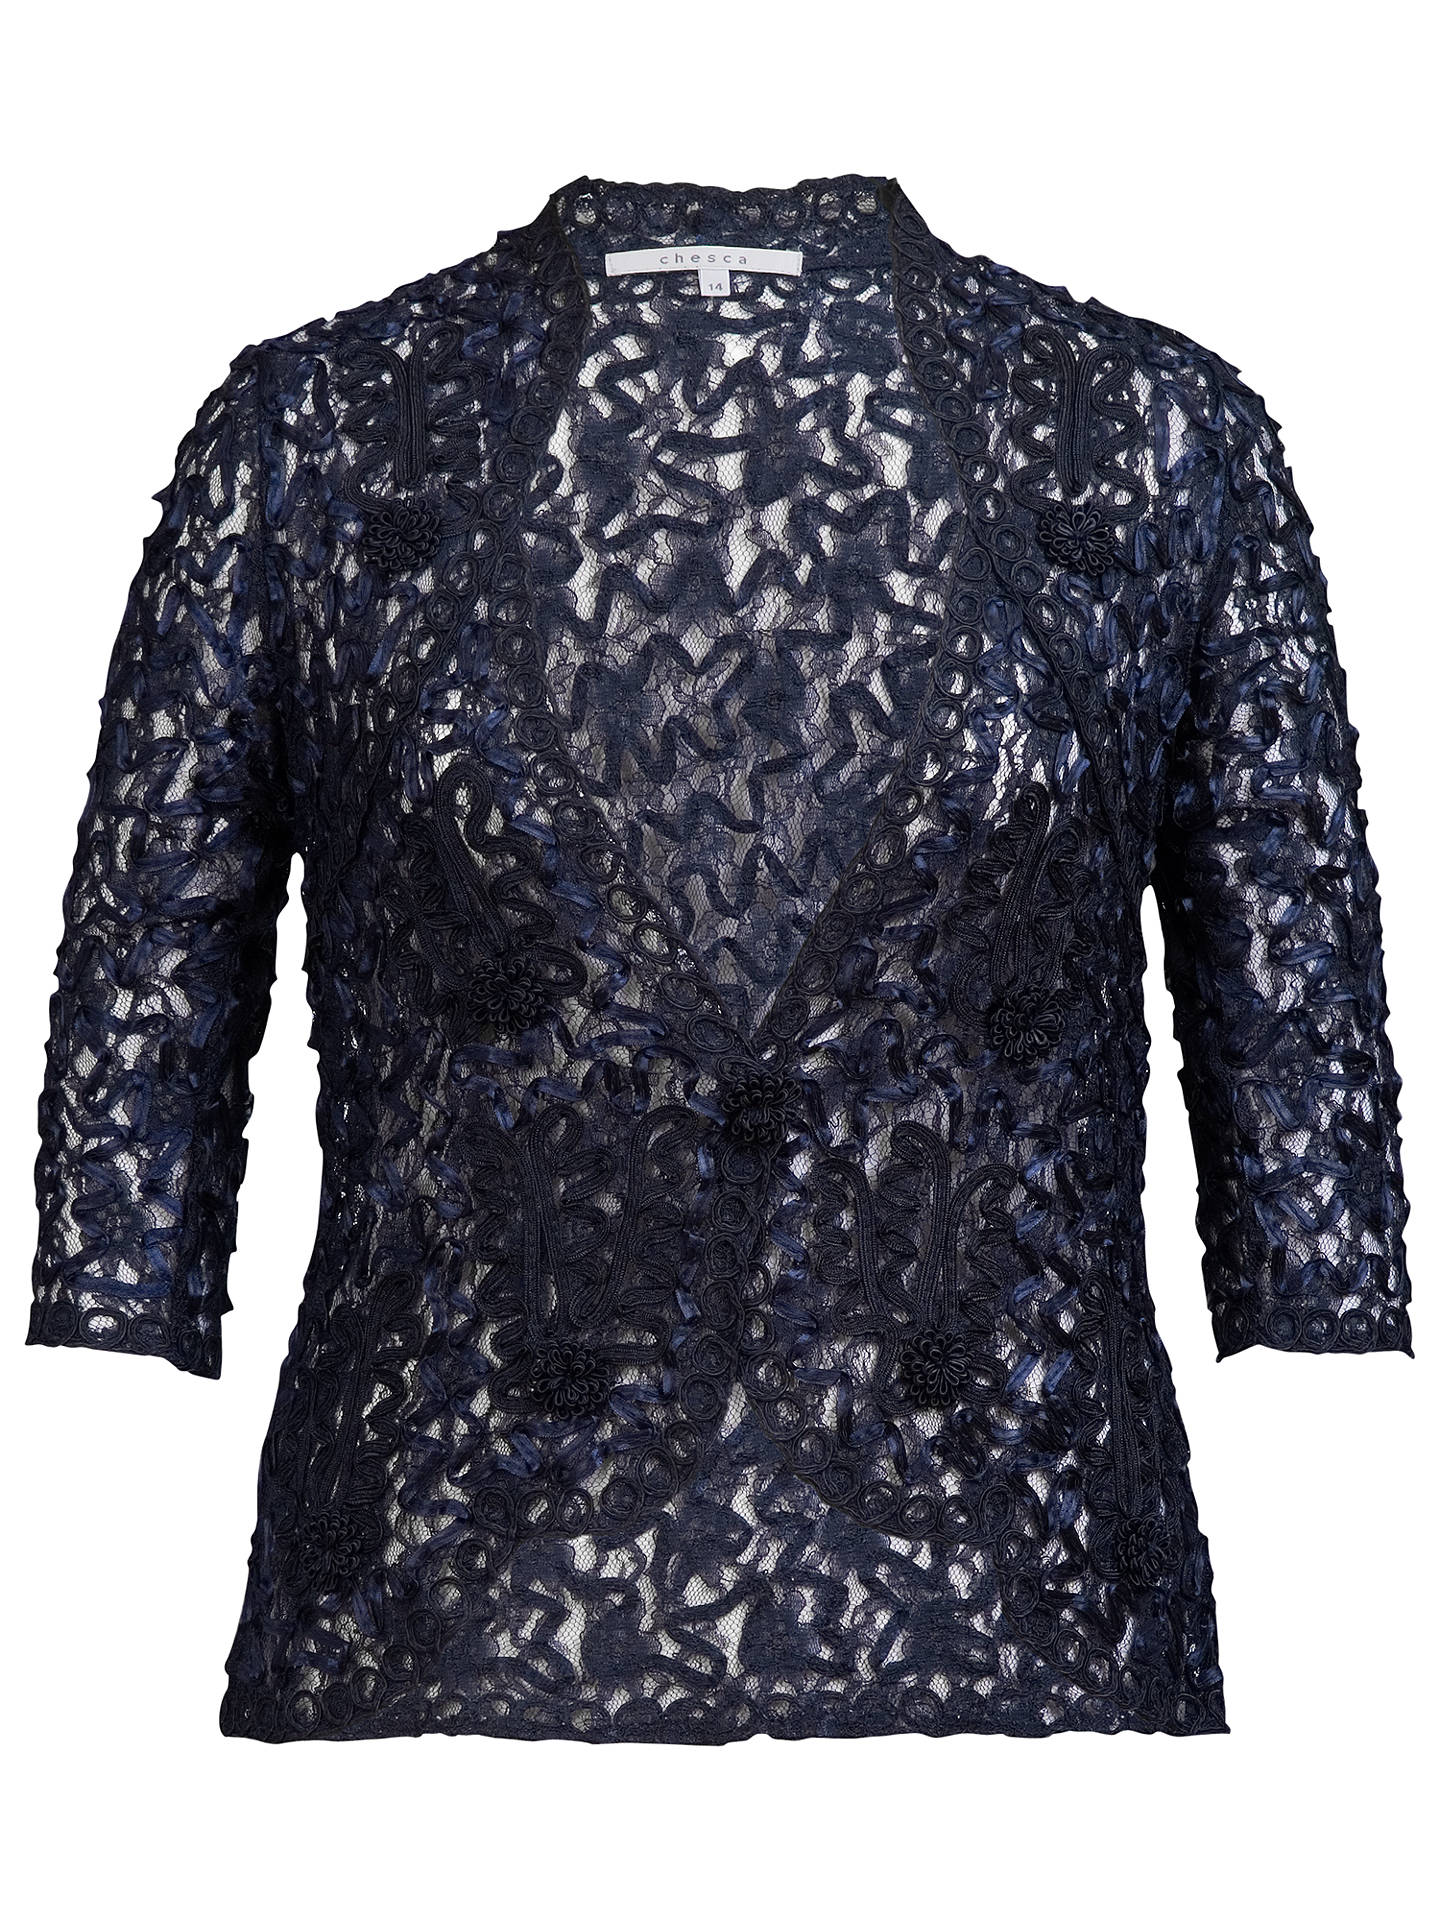 316fb45b Buy Chesca Cornelli Lace Jacket, Navy, 12 Online at johnlewis.com ...